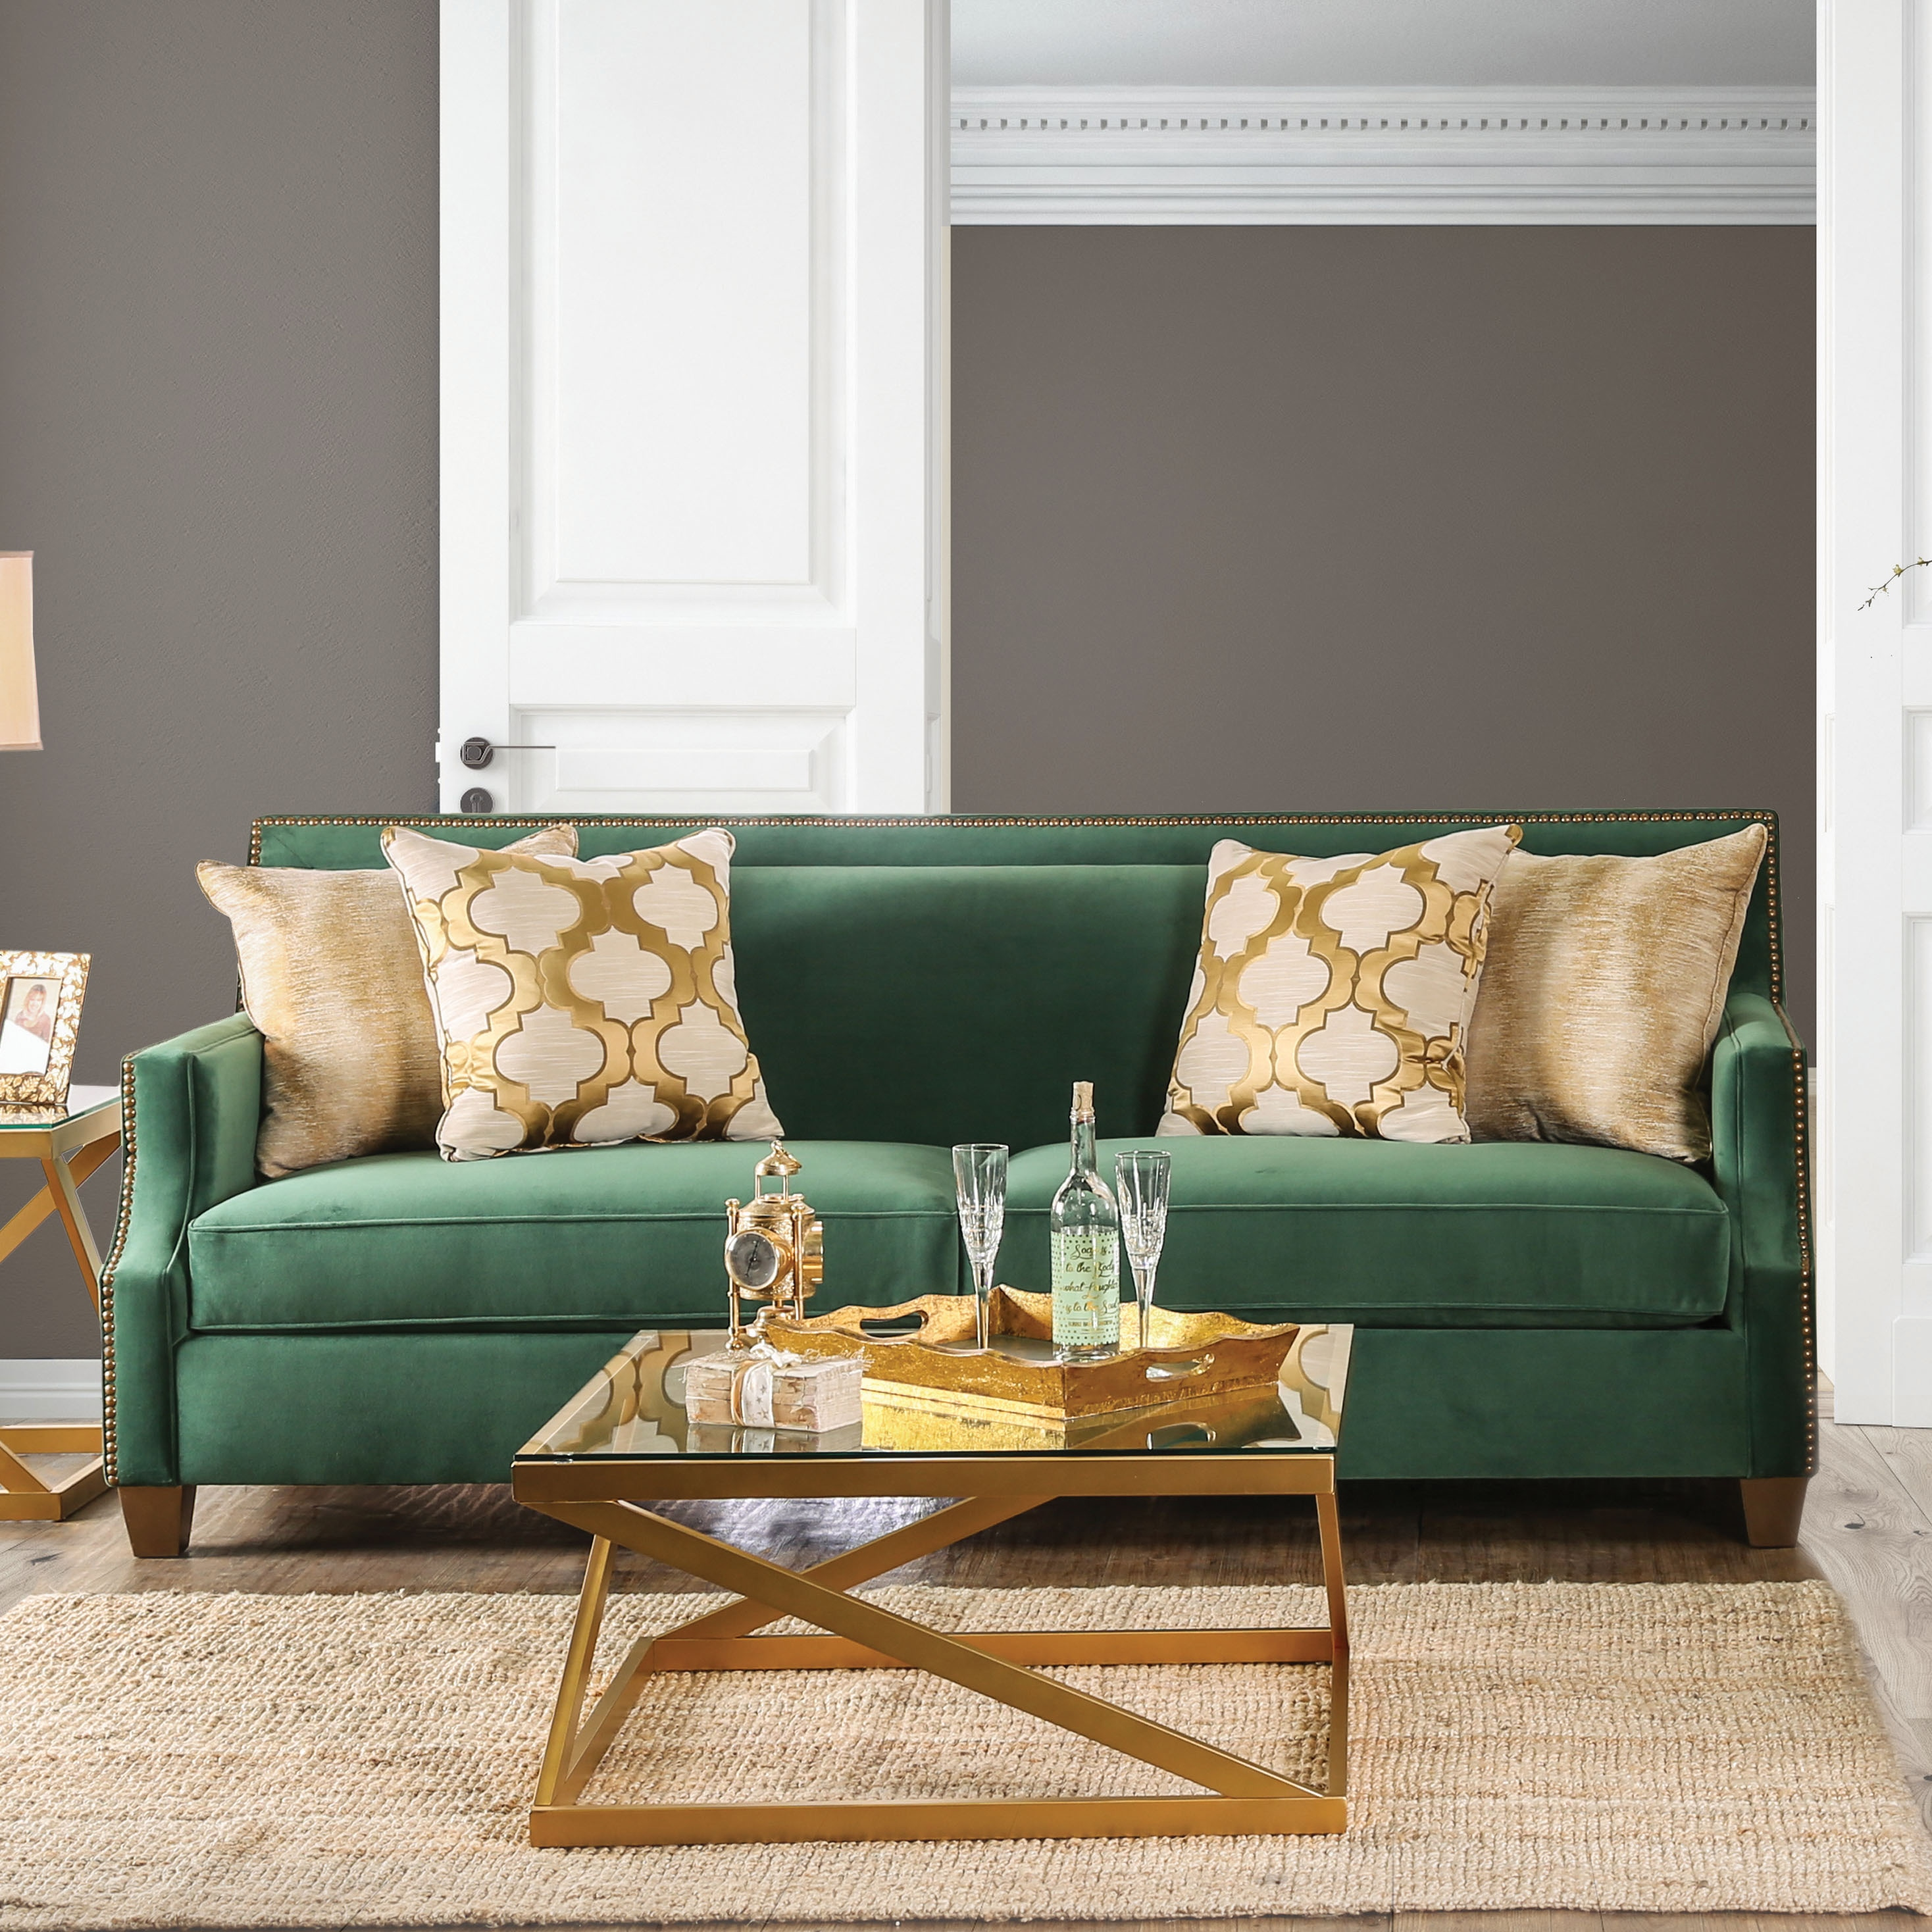 Katrina Contemporary Nailhead Microfiber Emerald Green Sofa By Furniture Of America On Free Shipping Today 14229039